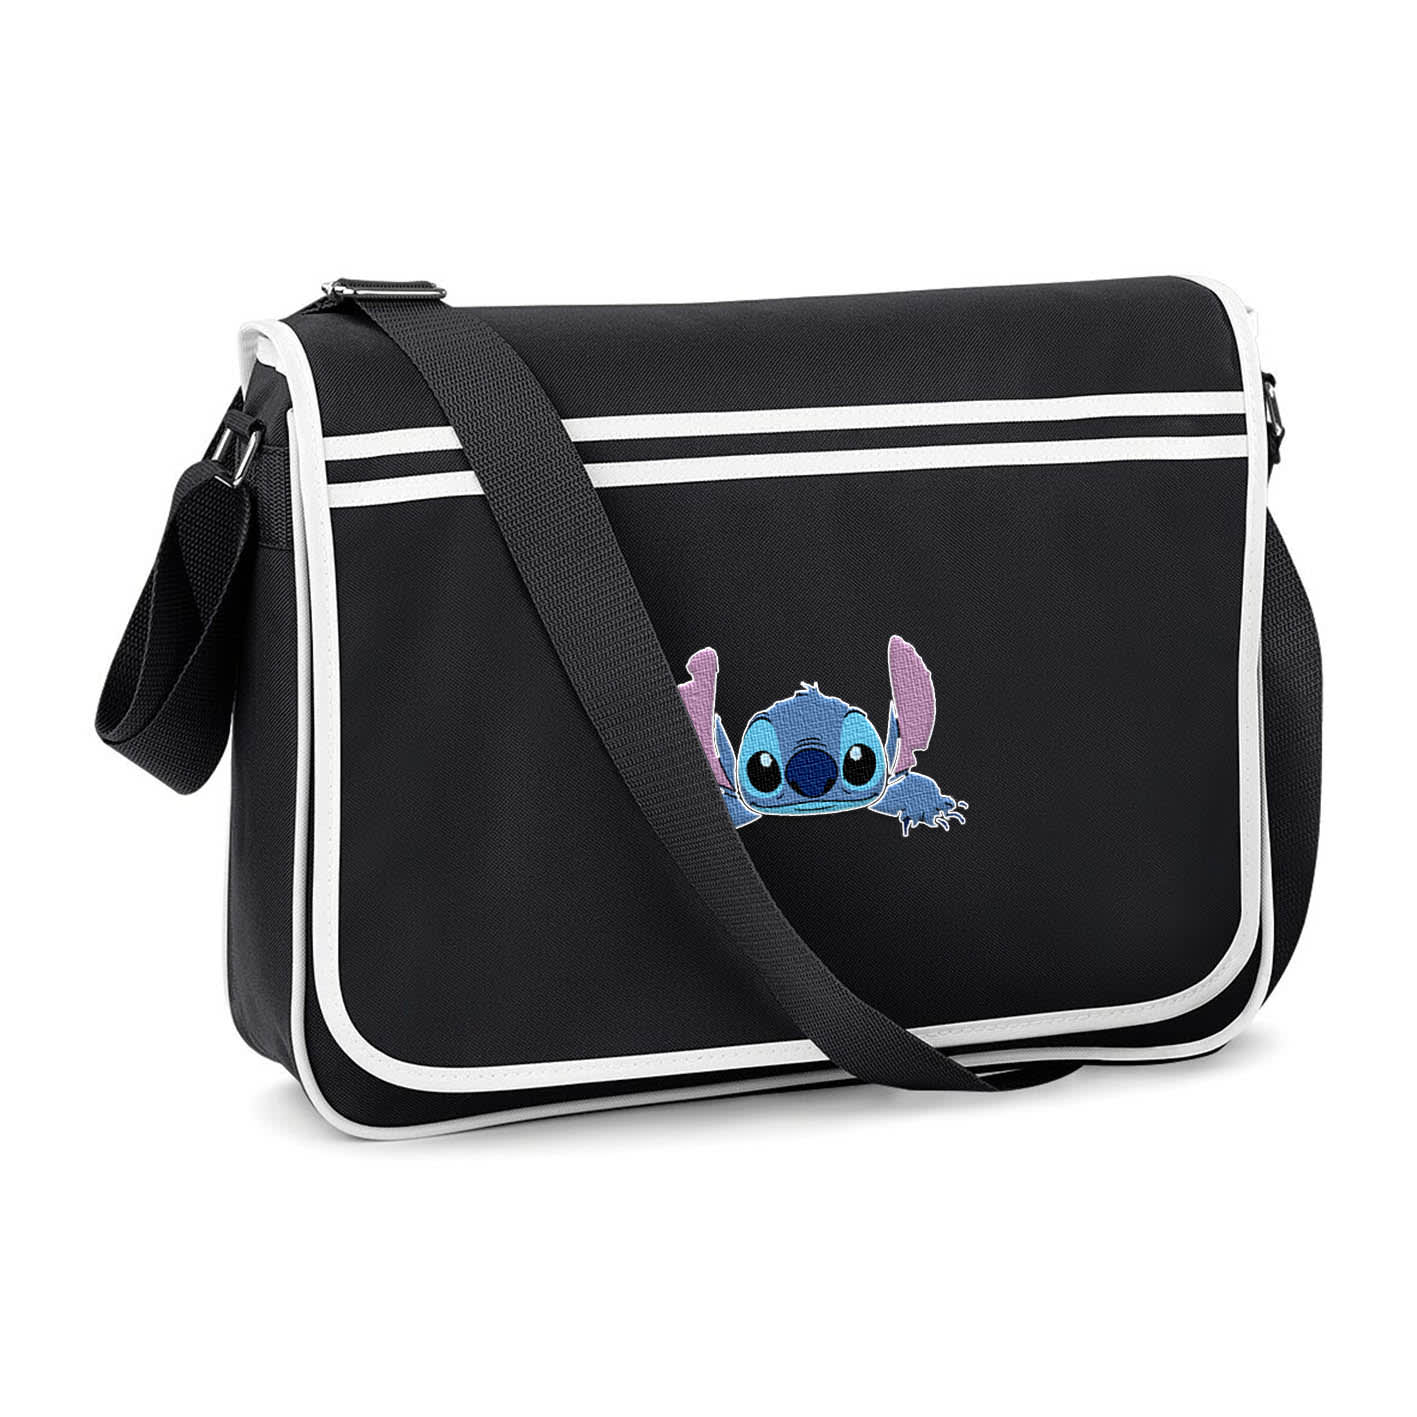 Lilo And Stitch Messenger Bag